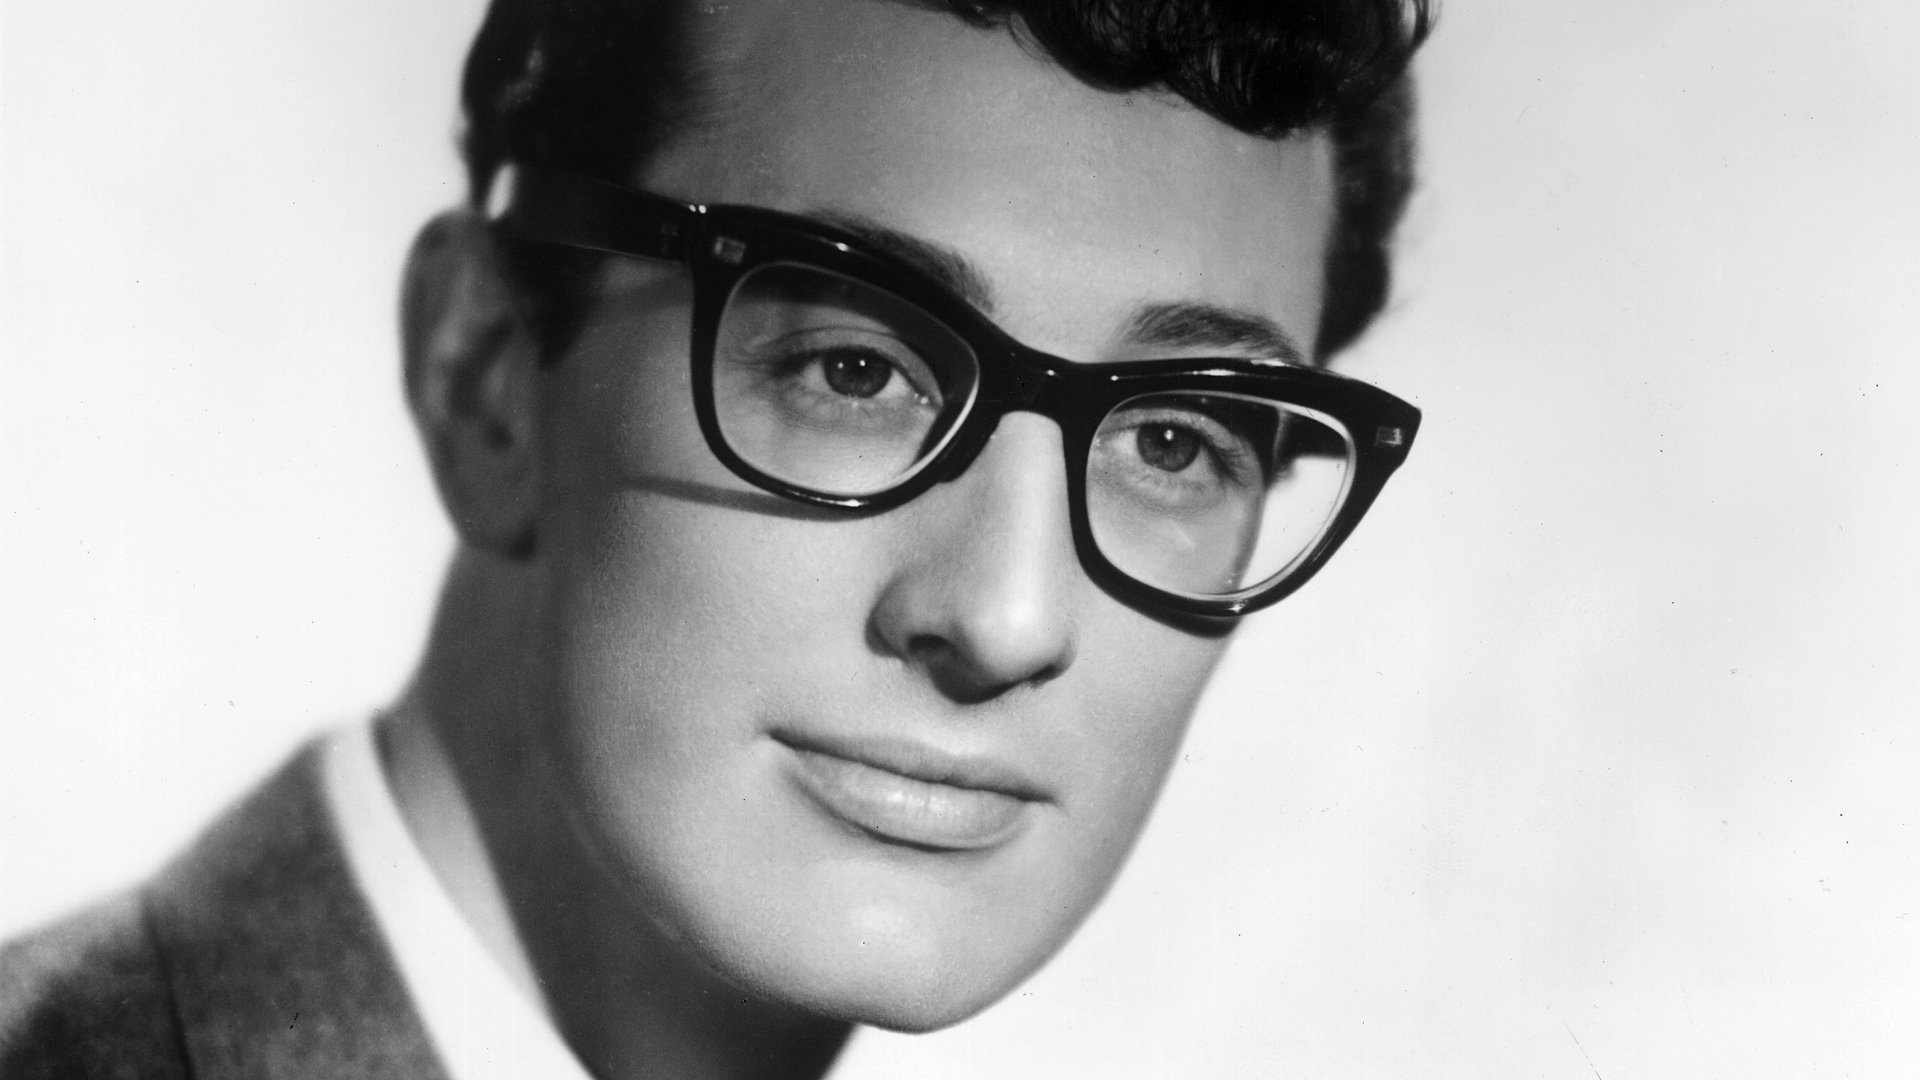 http://www.musicbusinessworldwide.com/files/2015/07/article-2-Buddy-Holly.jpg